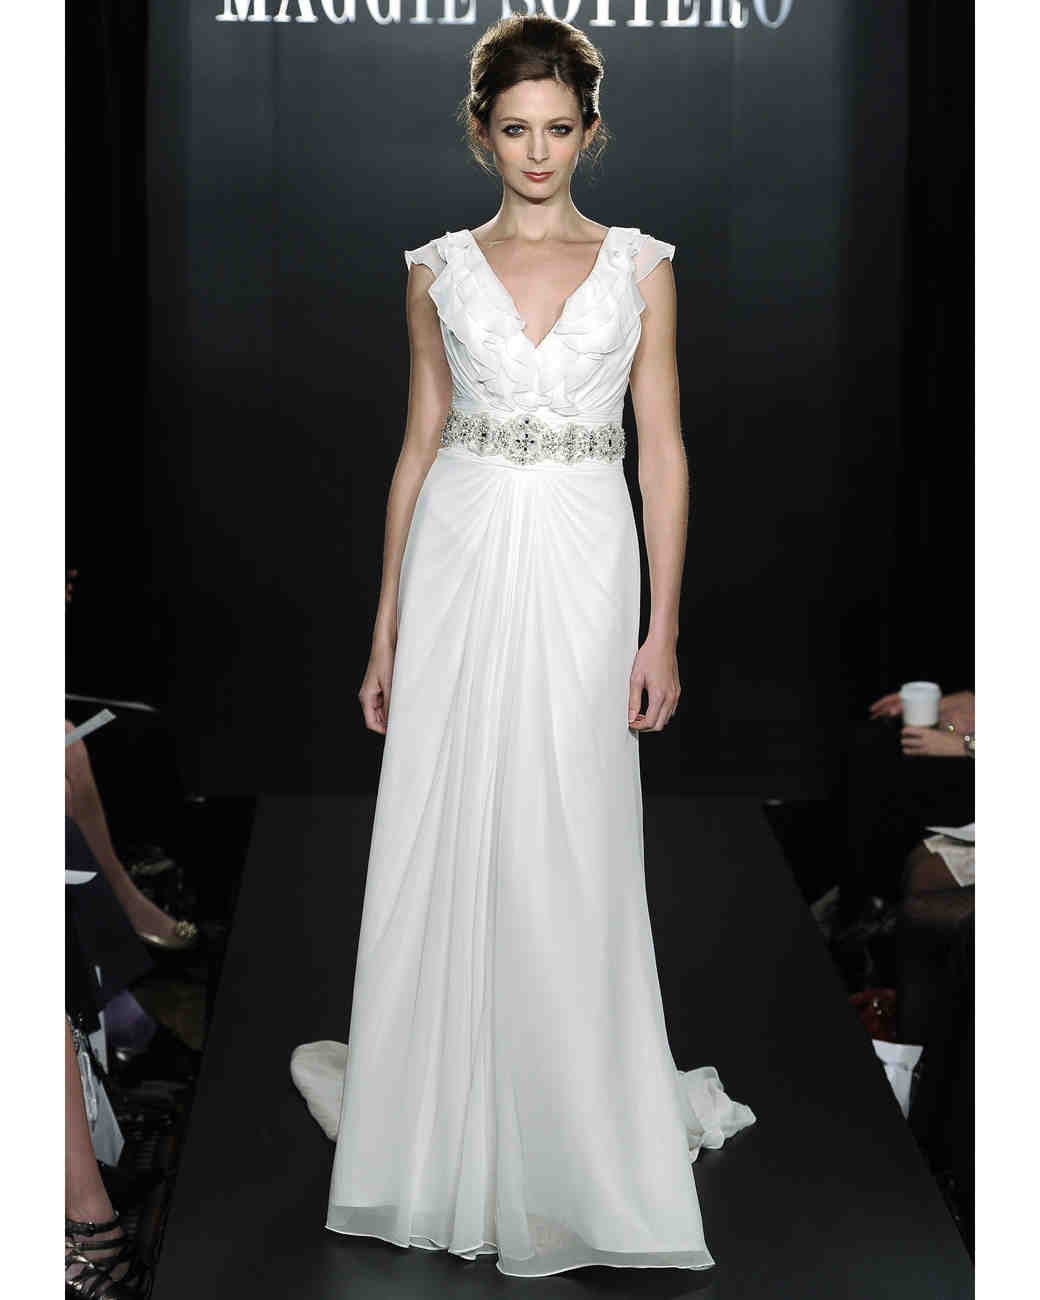 maggie-sottero-fall2012-wd108109_024.jpg